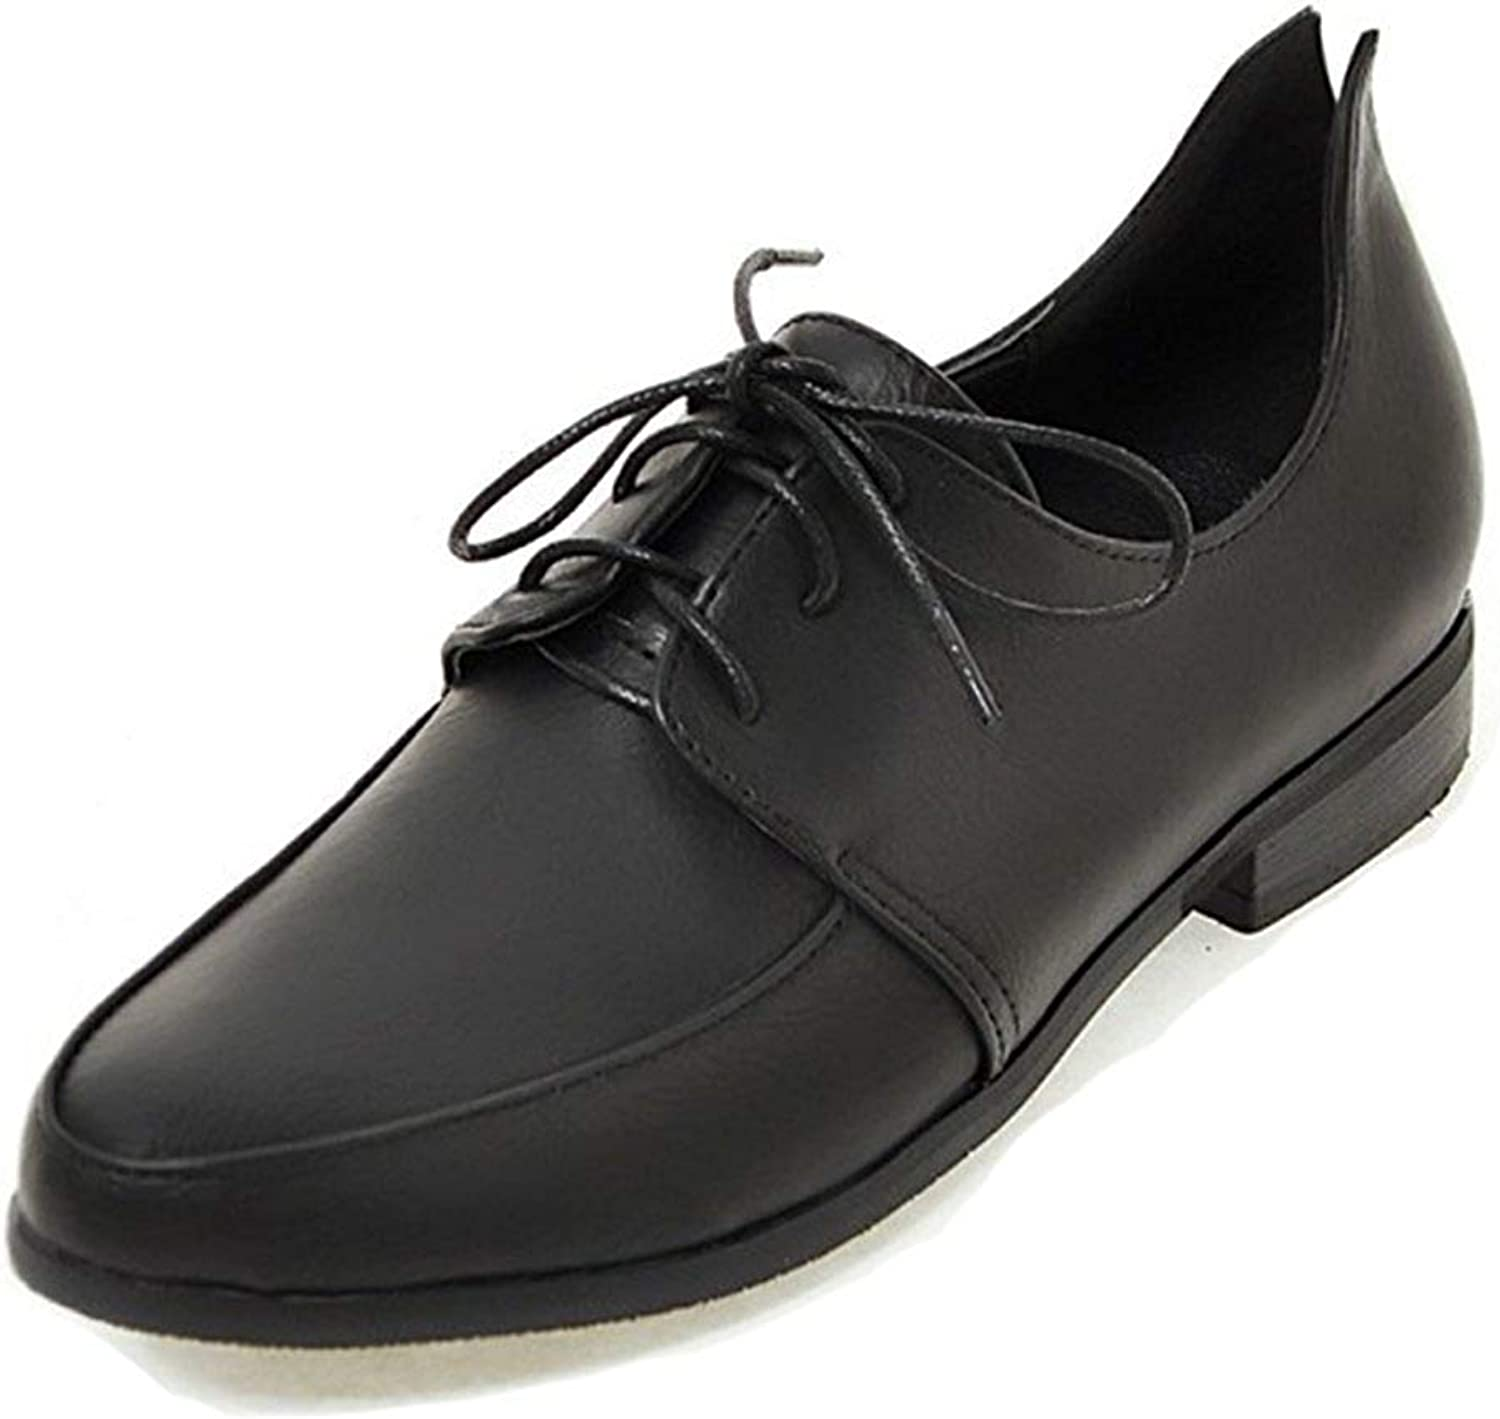 Women's Vintage Round Toe Lace Up Wear to Work Office Dressy Chunky Low Heel Oxfords shoes